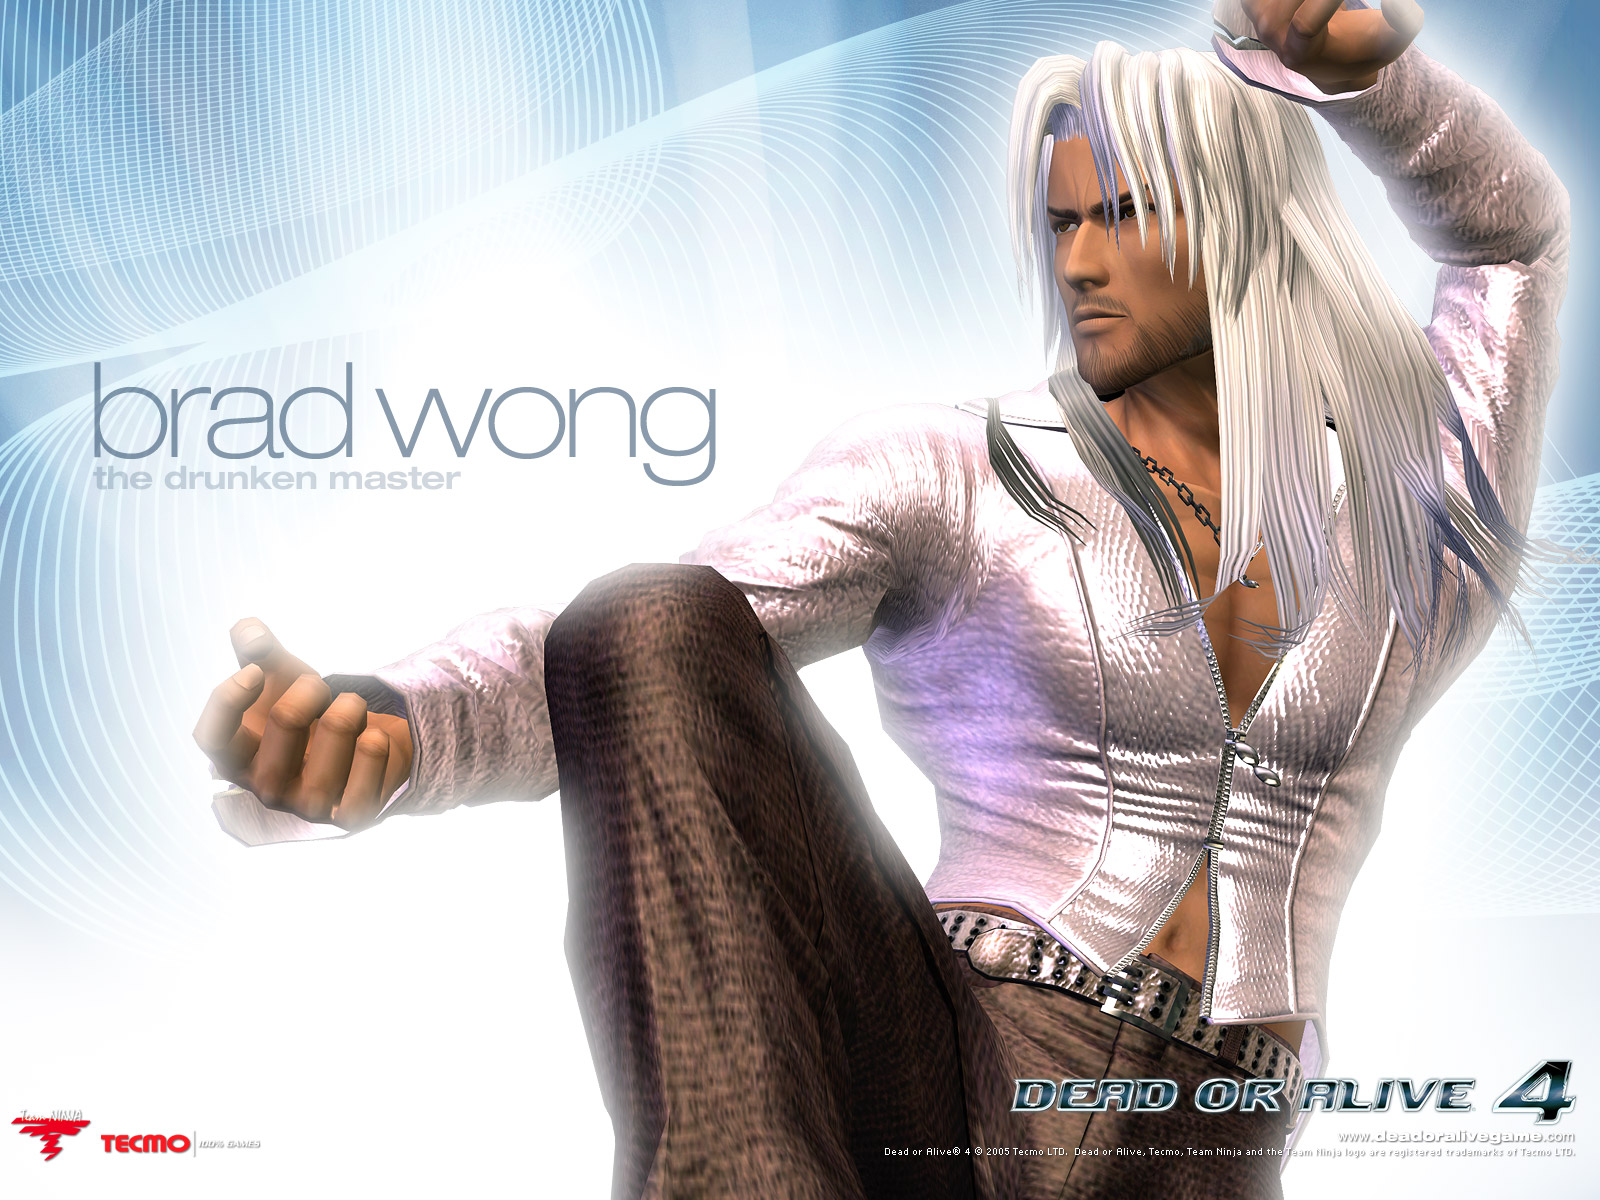 Dead Or Alive 4 wallpapers, Video Game, HQ Dead Or Alive 4